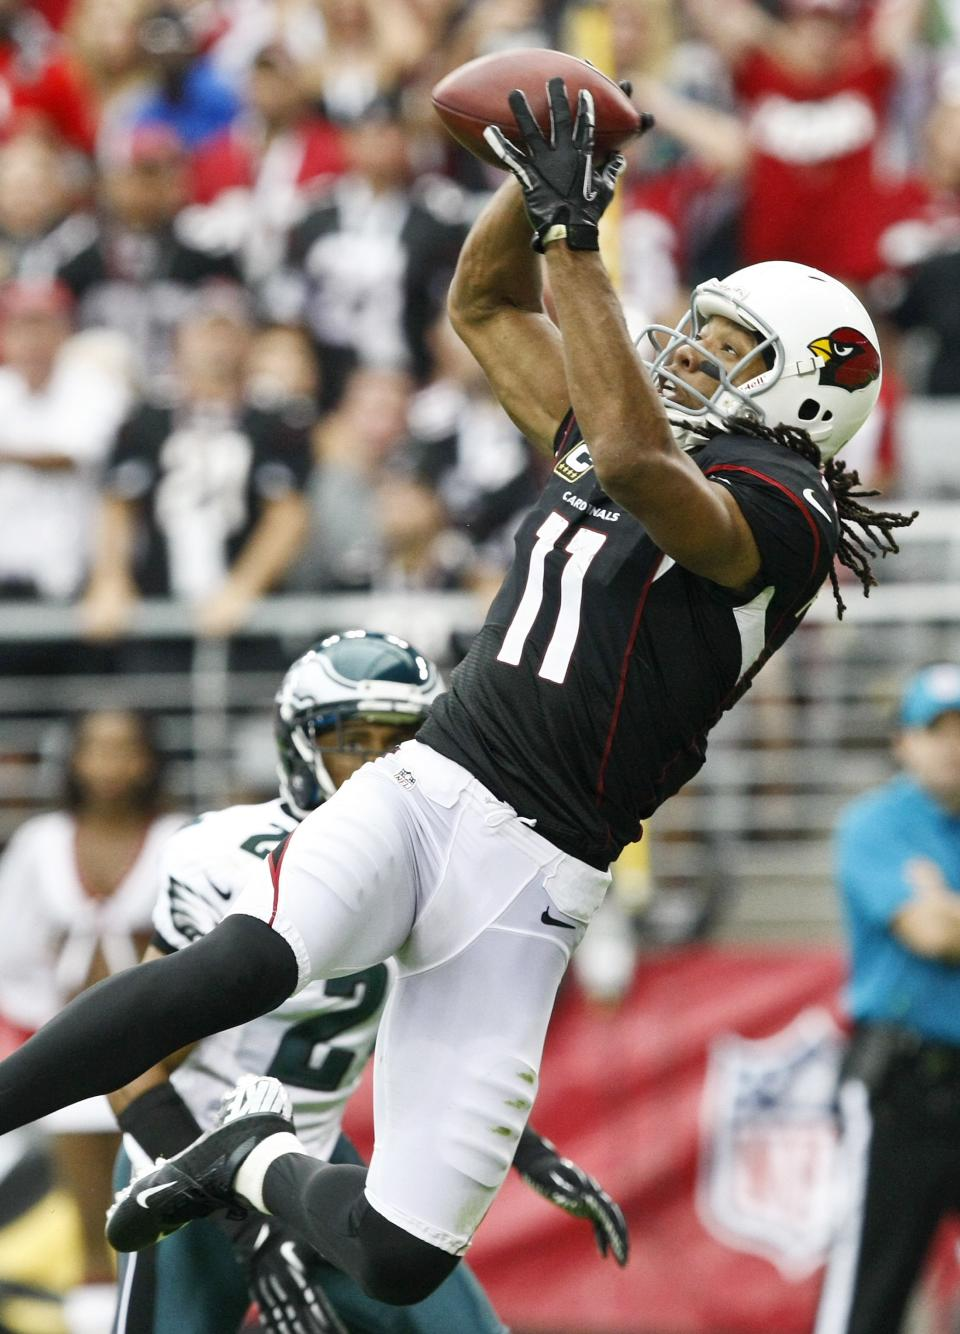 Arizona Cardinals' Larry Fitzgerald (11) makes a jumping touchdown catch in front of Philadelphia Eagles' Nnamdi Asomugha in the first half of an NFL football game on Sunday, Sept. 23, 2012, in Glendale, Ariz. (AP Photo/Rick Scuteri)